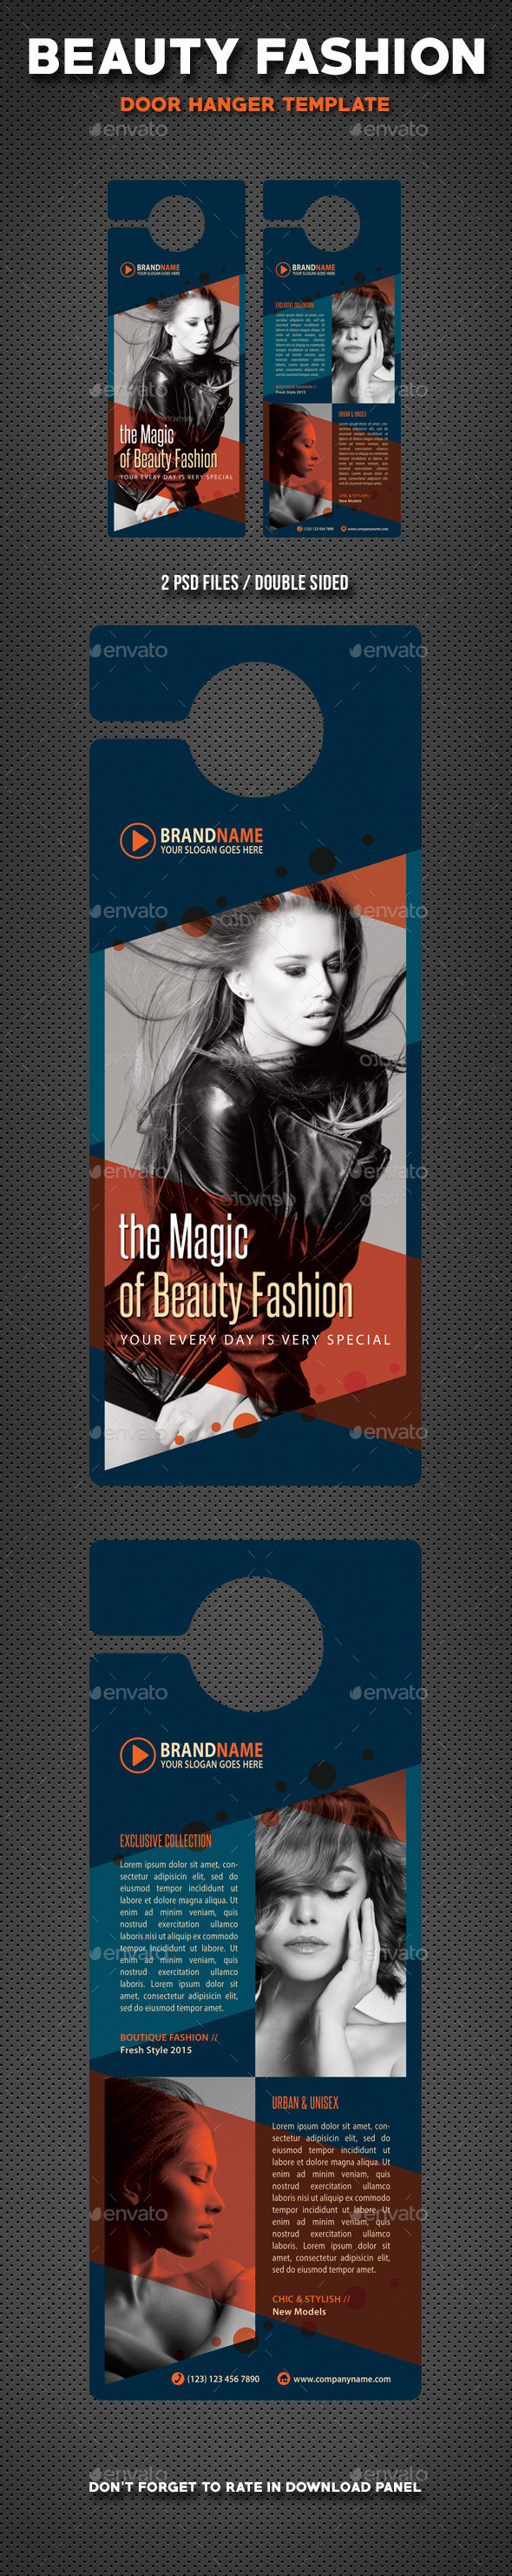 Beauty Fashion Door Hanger V3 - Miscellaneous Print Templates